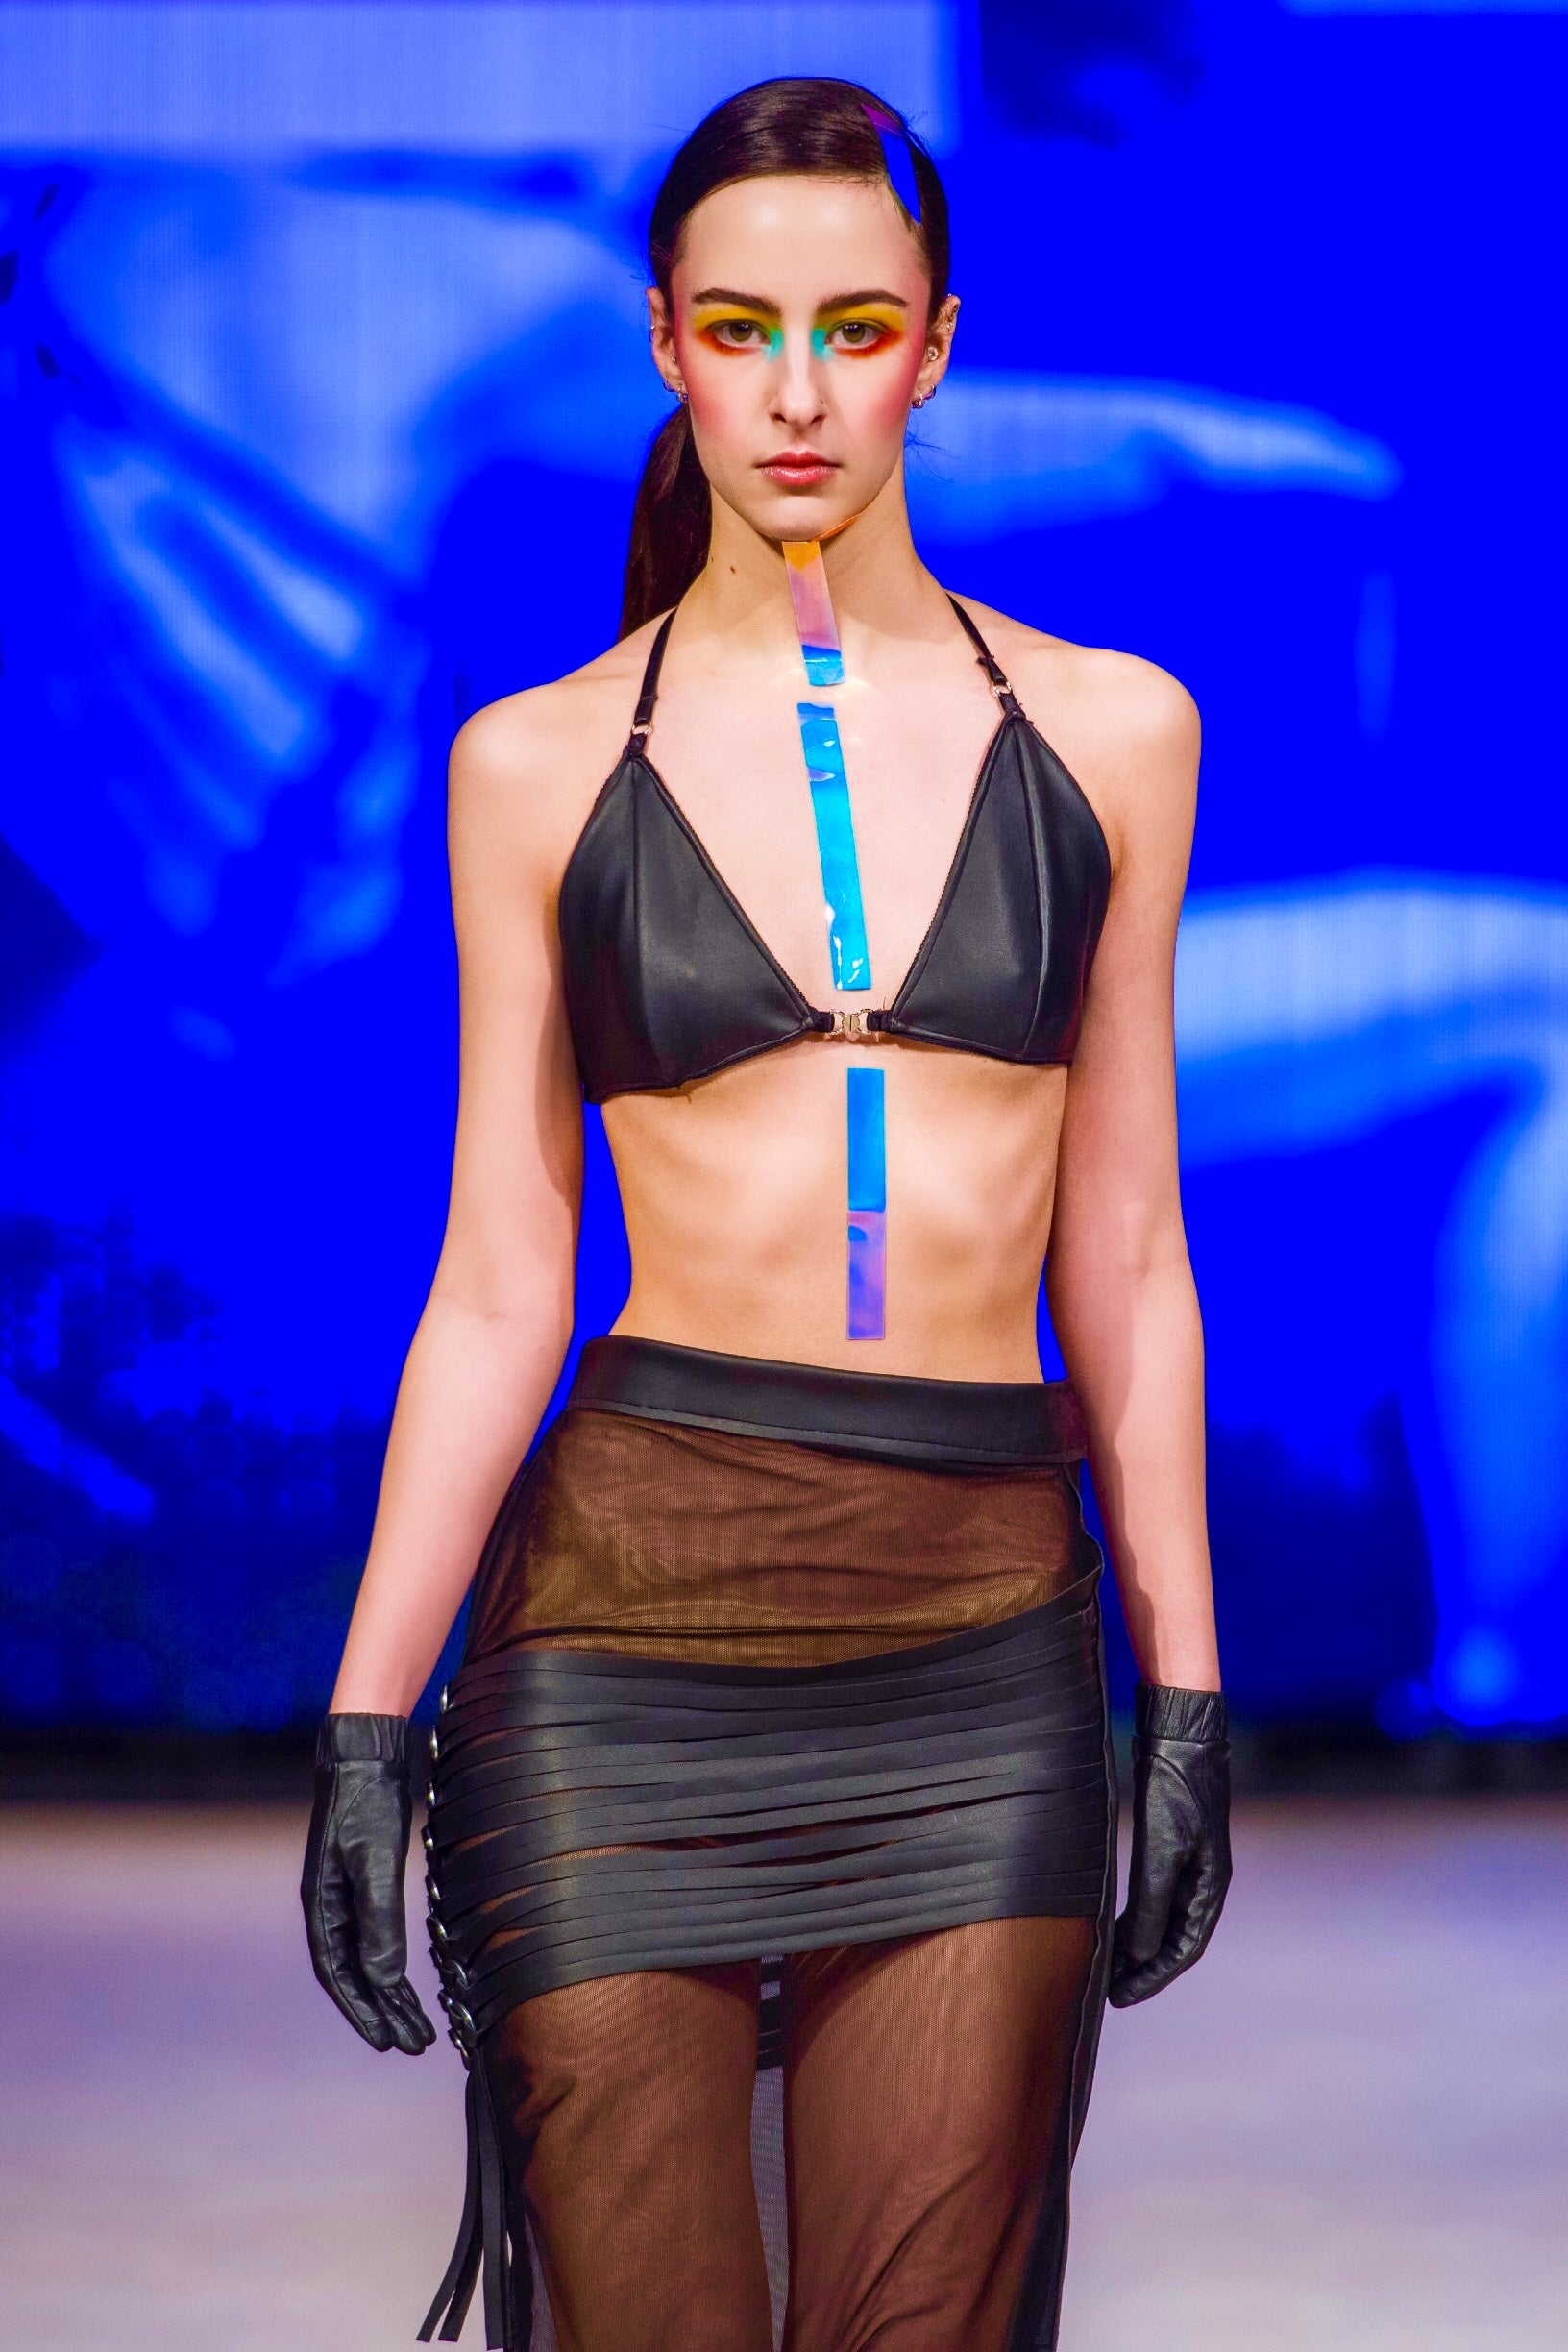 Sheer stretch tulle skirt with diagonal woven straps detail and black leather bra top (sold separately)